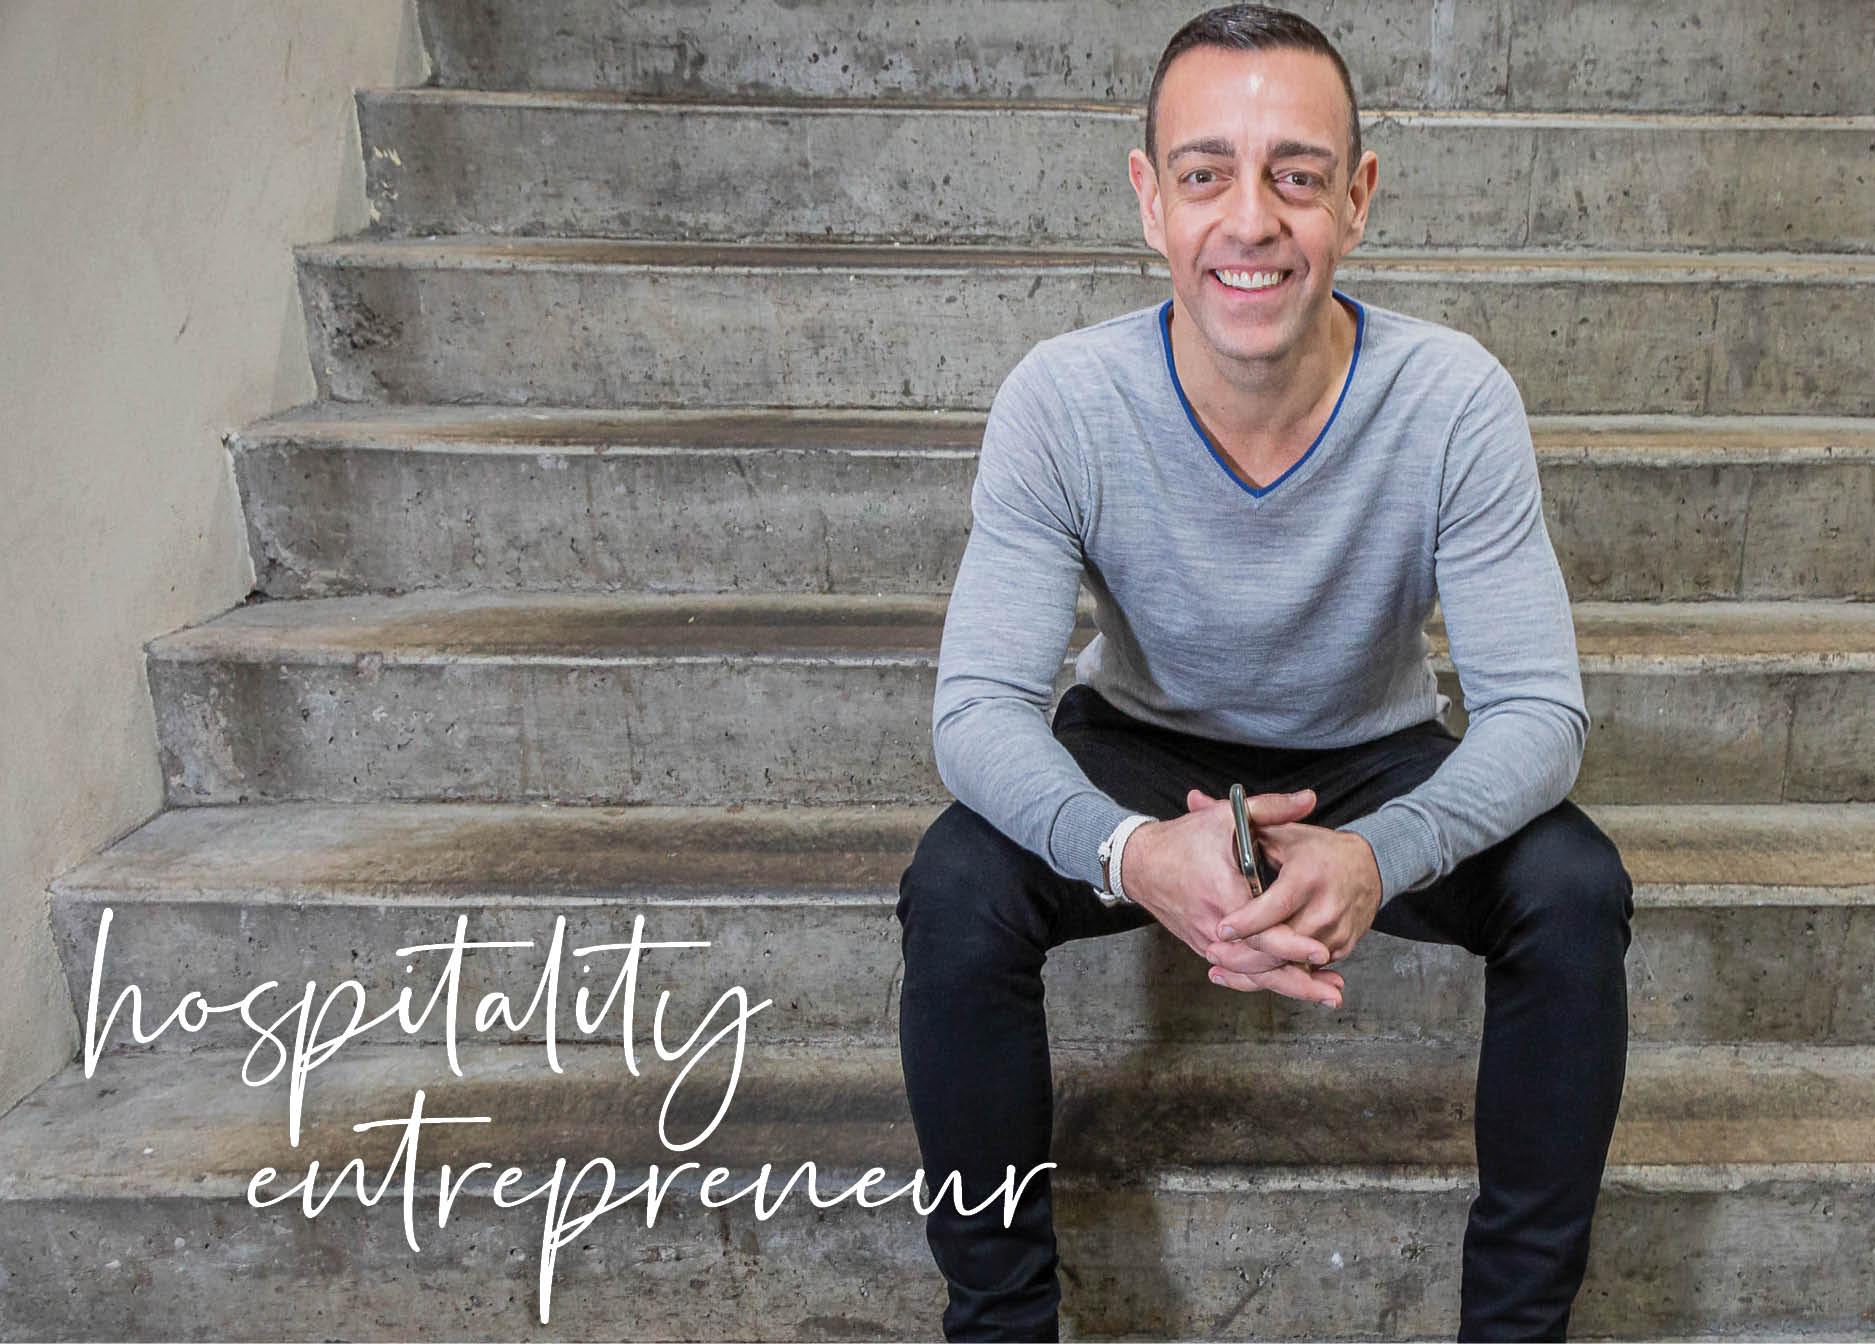 Steve Sidd, Hospitality Entrepreneur, Castle Hill RSL, Moorebank Sports Club, Lynwood Country Club, Parramatta RSL, restaurant consultant, business advisory, food services, catering, club restaurants